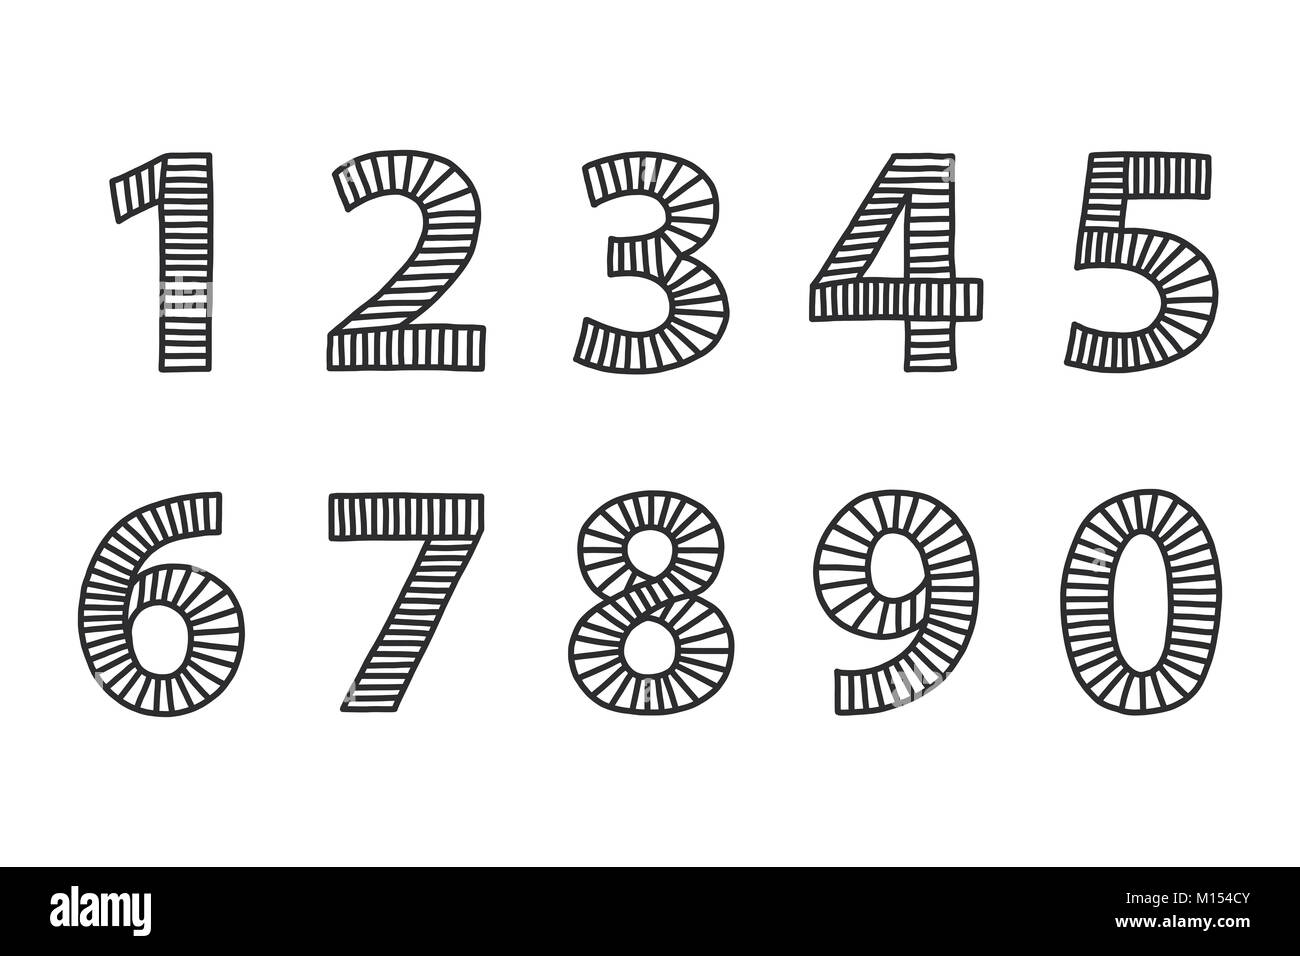 Freehand drawn numbers from one to zero. Set in black outlines, filled with lines in even distances. Loose appearance. - Stock Image